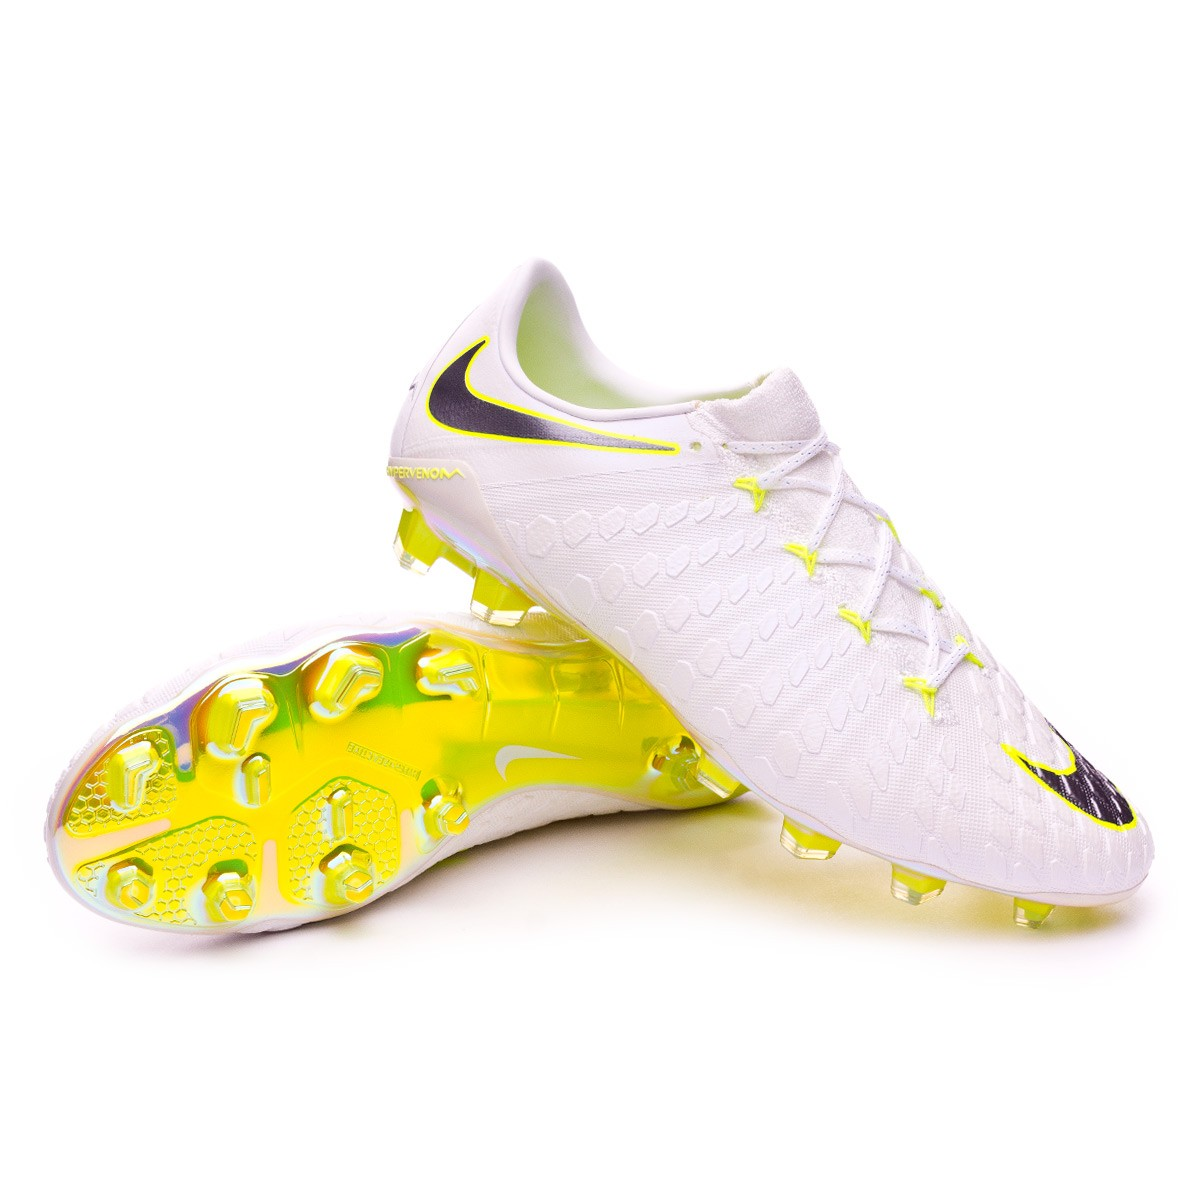 231f577cd232 Football Boots Nike Hypervenom Phantom III Elite FG White-Metallic cool  grey-Volt-Metallic cool g - Football store Fútbol Emotion